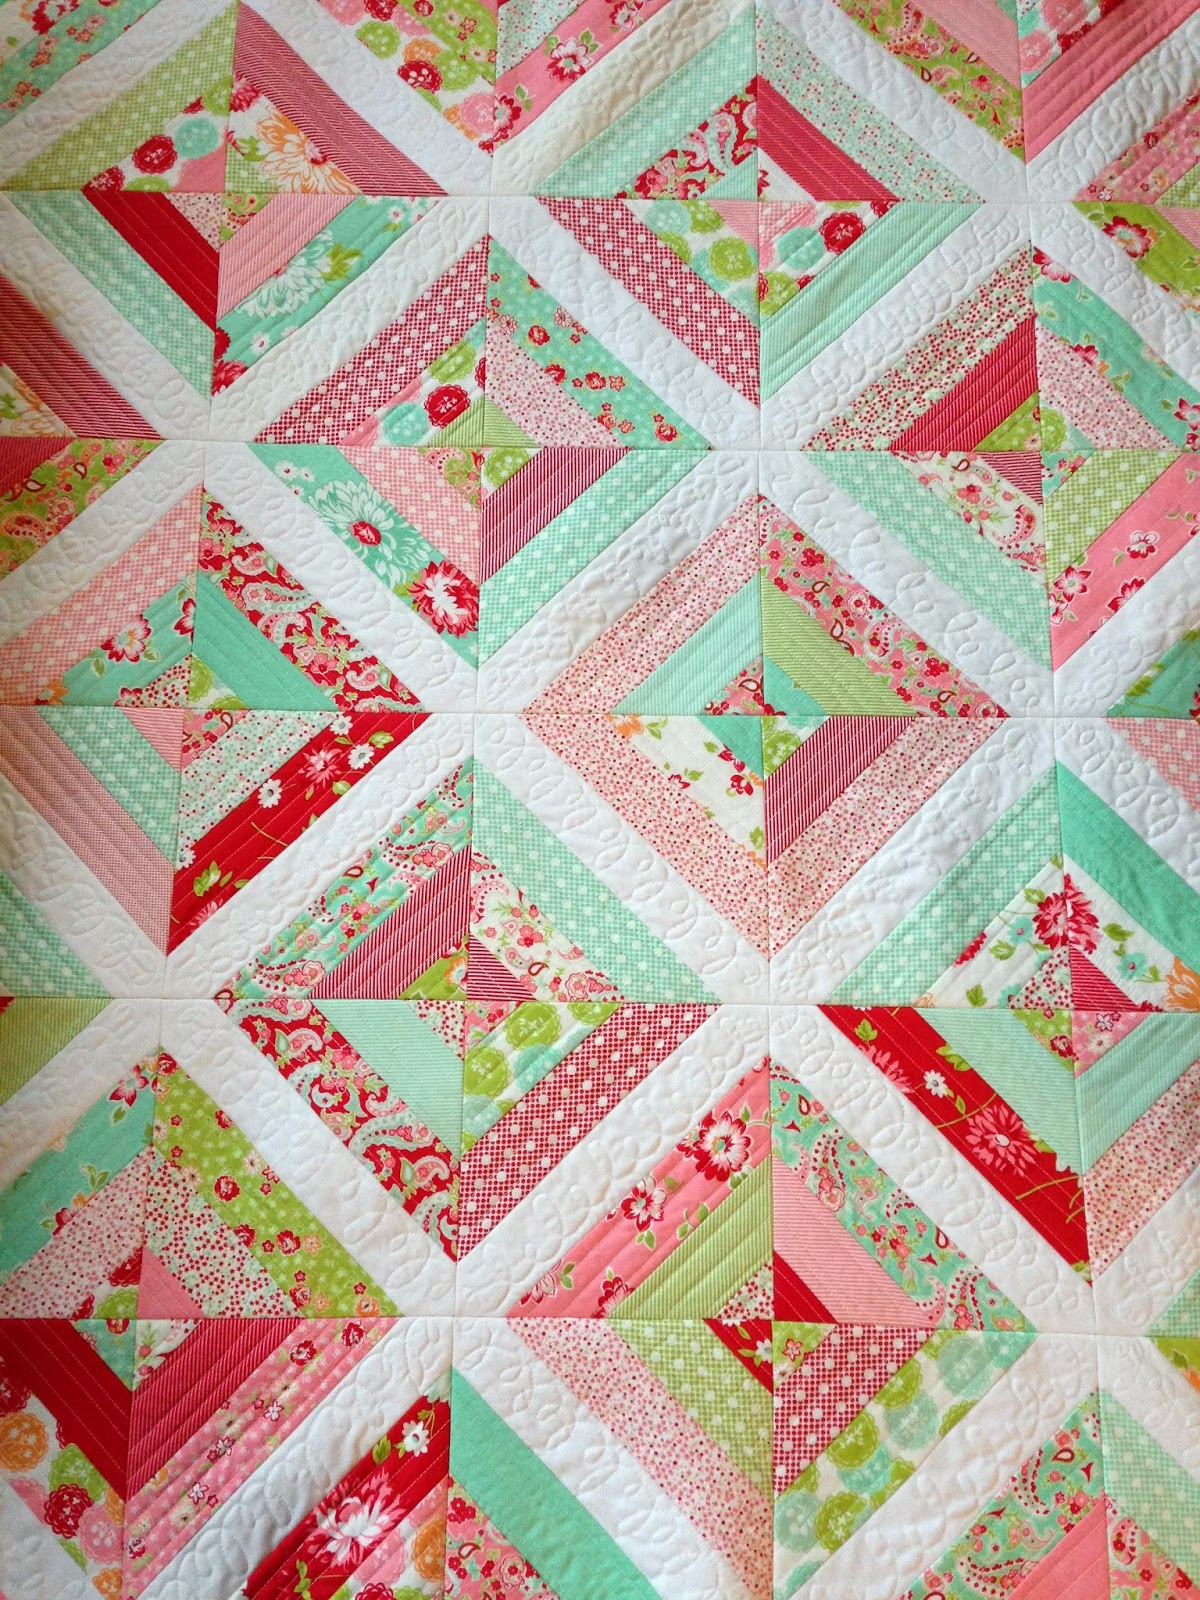 Quilt Patterns Using Strips Of Fabric : Quilt Patterns Using Strips - Bing images